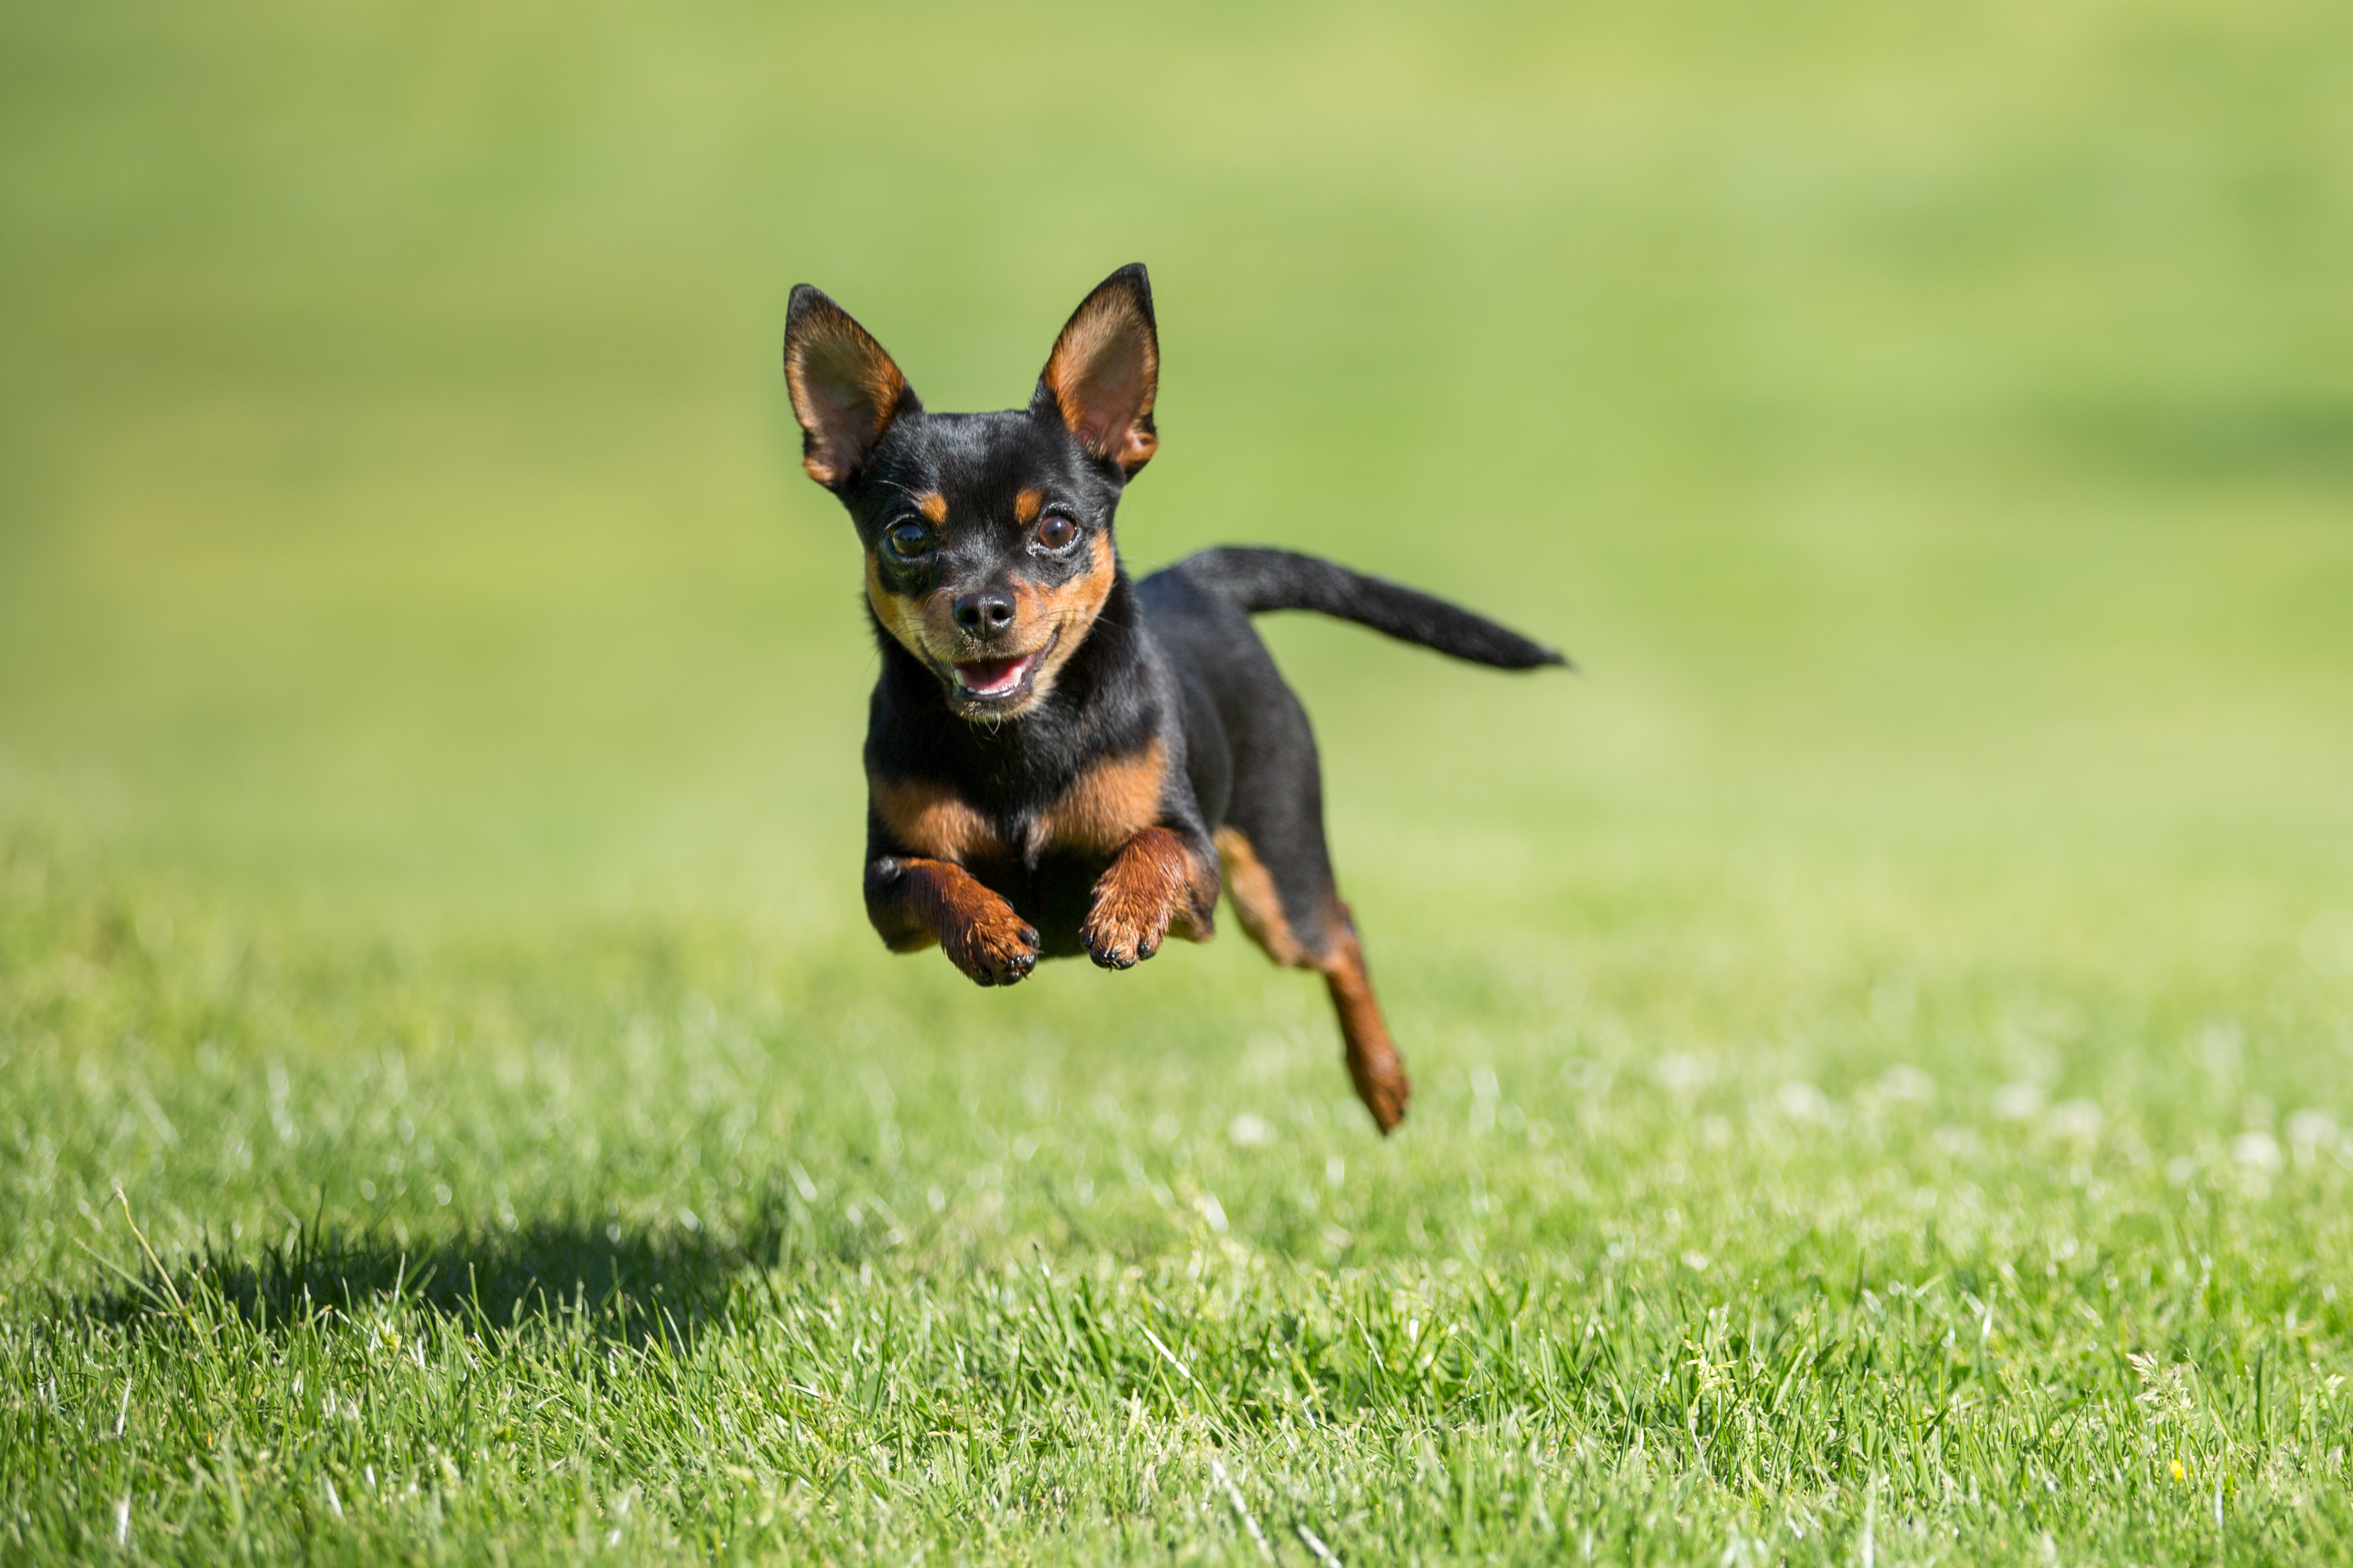 A happy Chihuahua dog leaps over short grass on a sunny day.